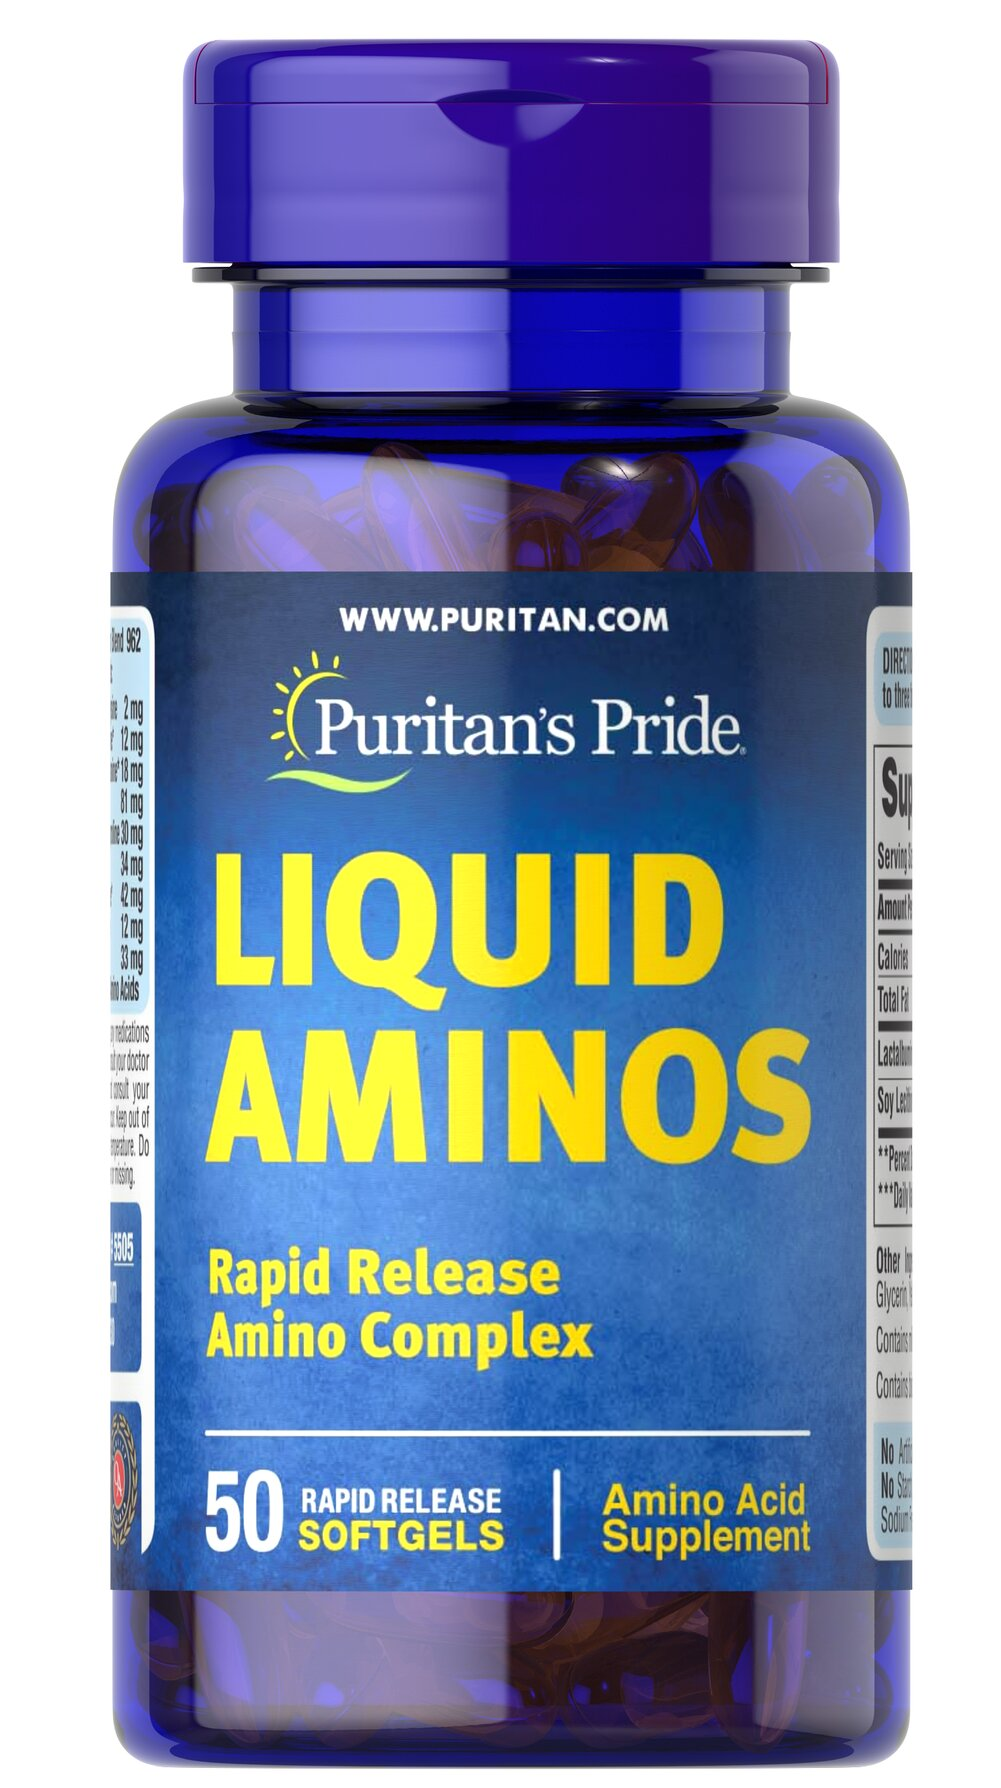 Liquid Aminos <p>Each Liquid Aminos softgel contains: L-Alanine (30 mg), L-Arginine (54 mg), L-Aspartic Acid (83 mg), L-Cysteine (10 mg), L-Glutamic Acid (145 mg), L-Glycine (33 mg),  L-Histidine (20 mg), L-Isoleucine (35 mg), L-Leucine (60 mg), L-Lysine (59 mg), L-Methionine (9 mg), L-Phenylalanine (41 mg), L-Proline (38 mg), L-Serine (39 mg), L-Threonine (32 mg), L-Tyrosine (22 mg), and L-Valine (33 mg)</p> 50 Softgels  $12.29